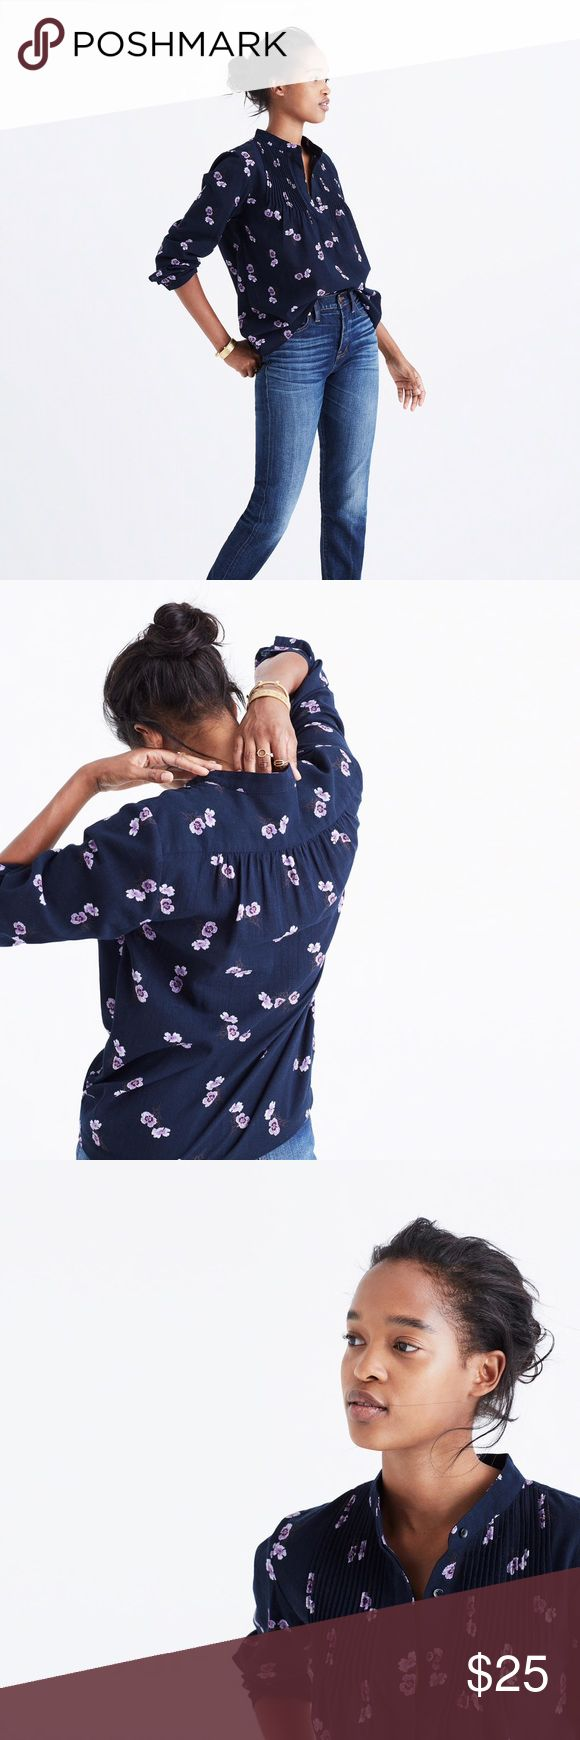 Madewell Pintuck Popover Shirt in Pansy Boquet In excellent condition. 100% cotton. This shirt has a loose fit, so size XXS can fit size 0 through size 4 in tops. Madewell Tops Blouses